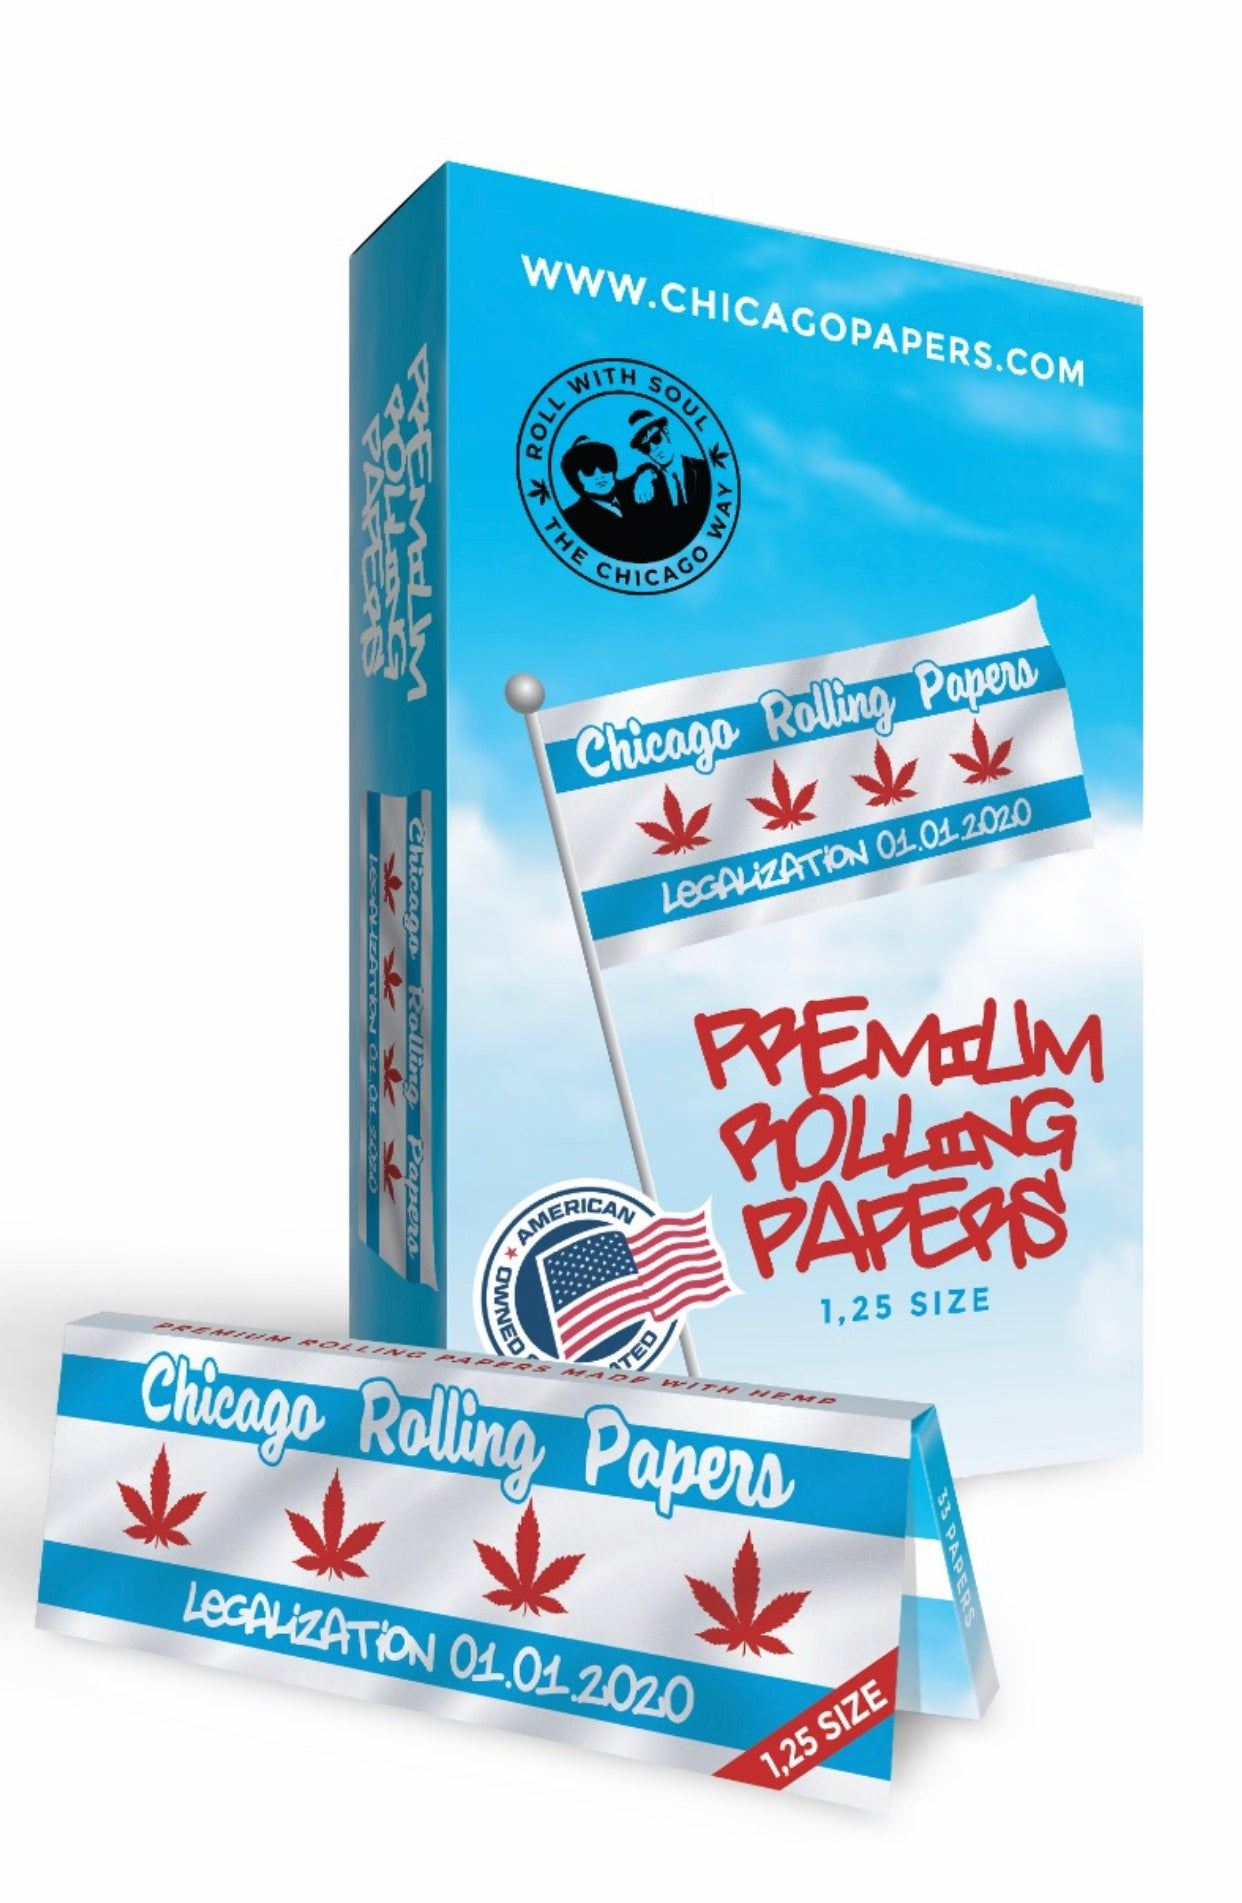 1 pack - Size.1.25 33 Rolling Papers